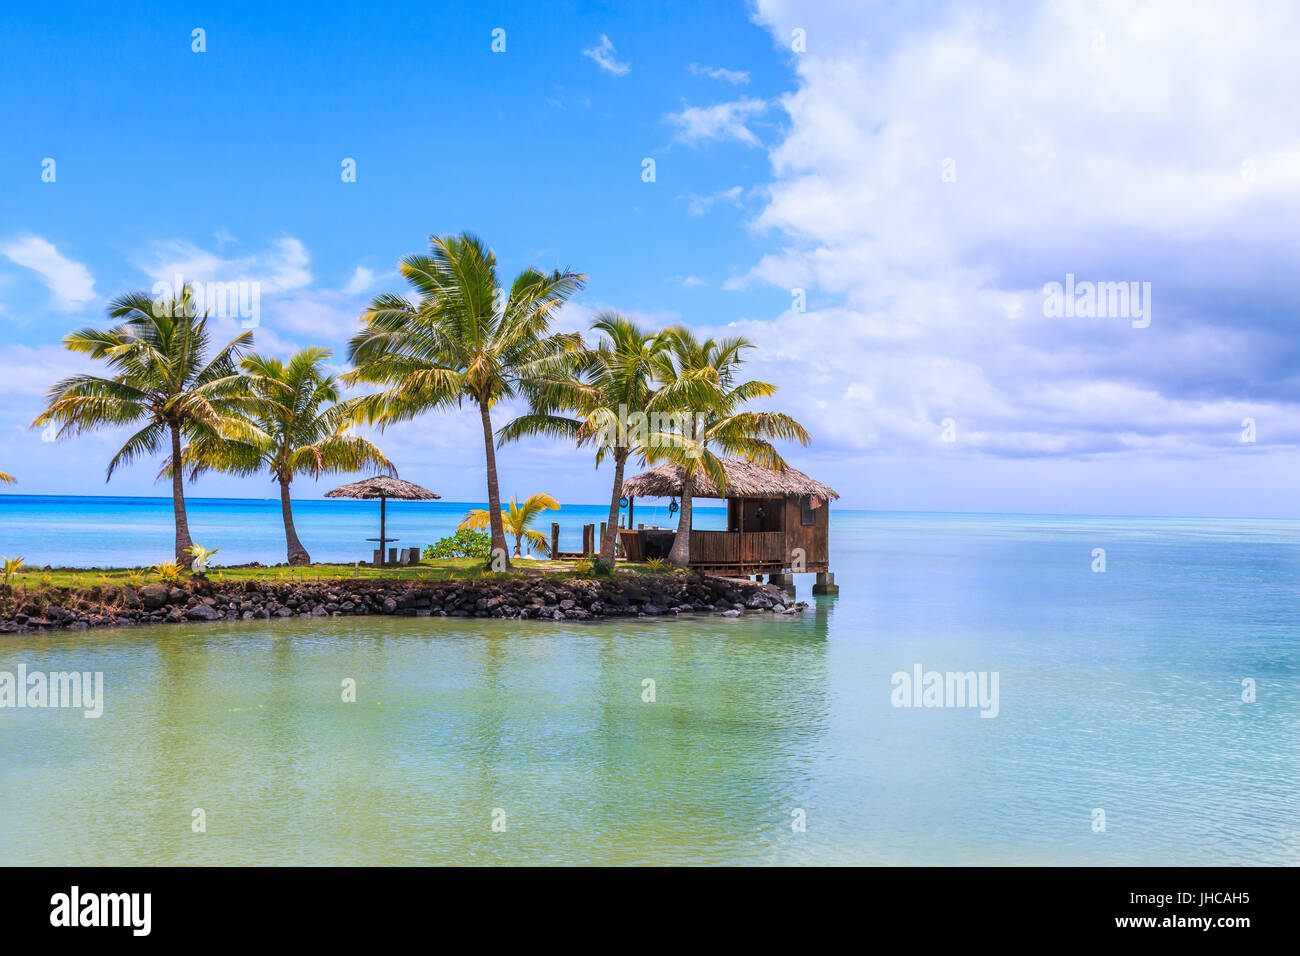 Samoa Island.Tropical beach on Samoa Island with palm trees. - Stock Image